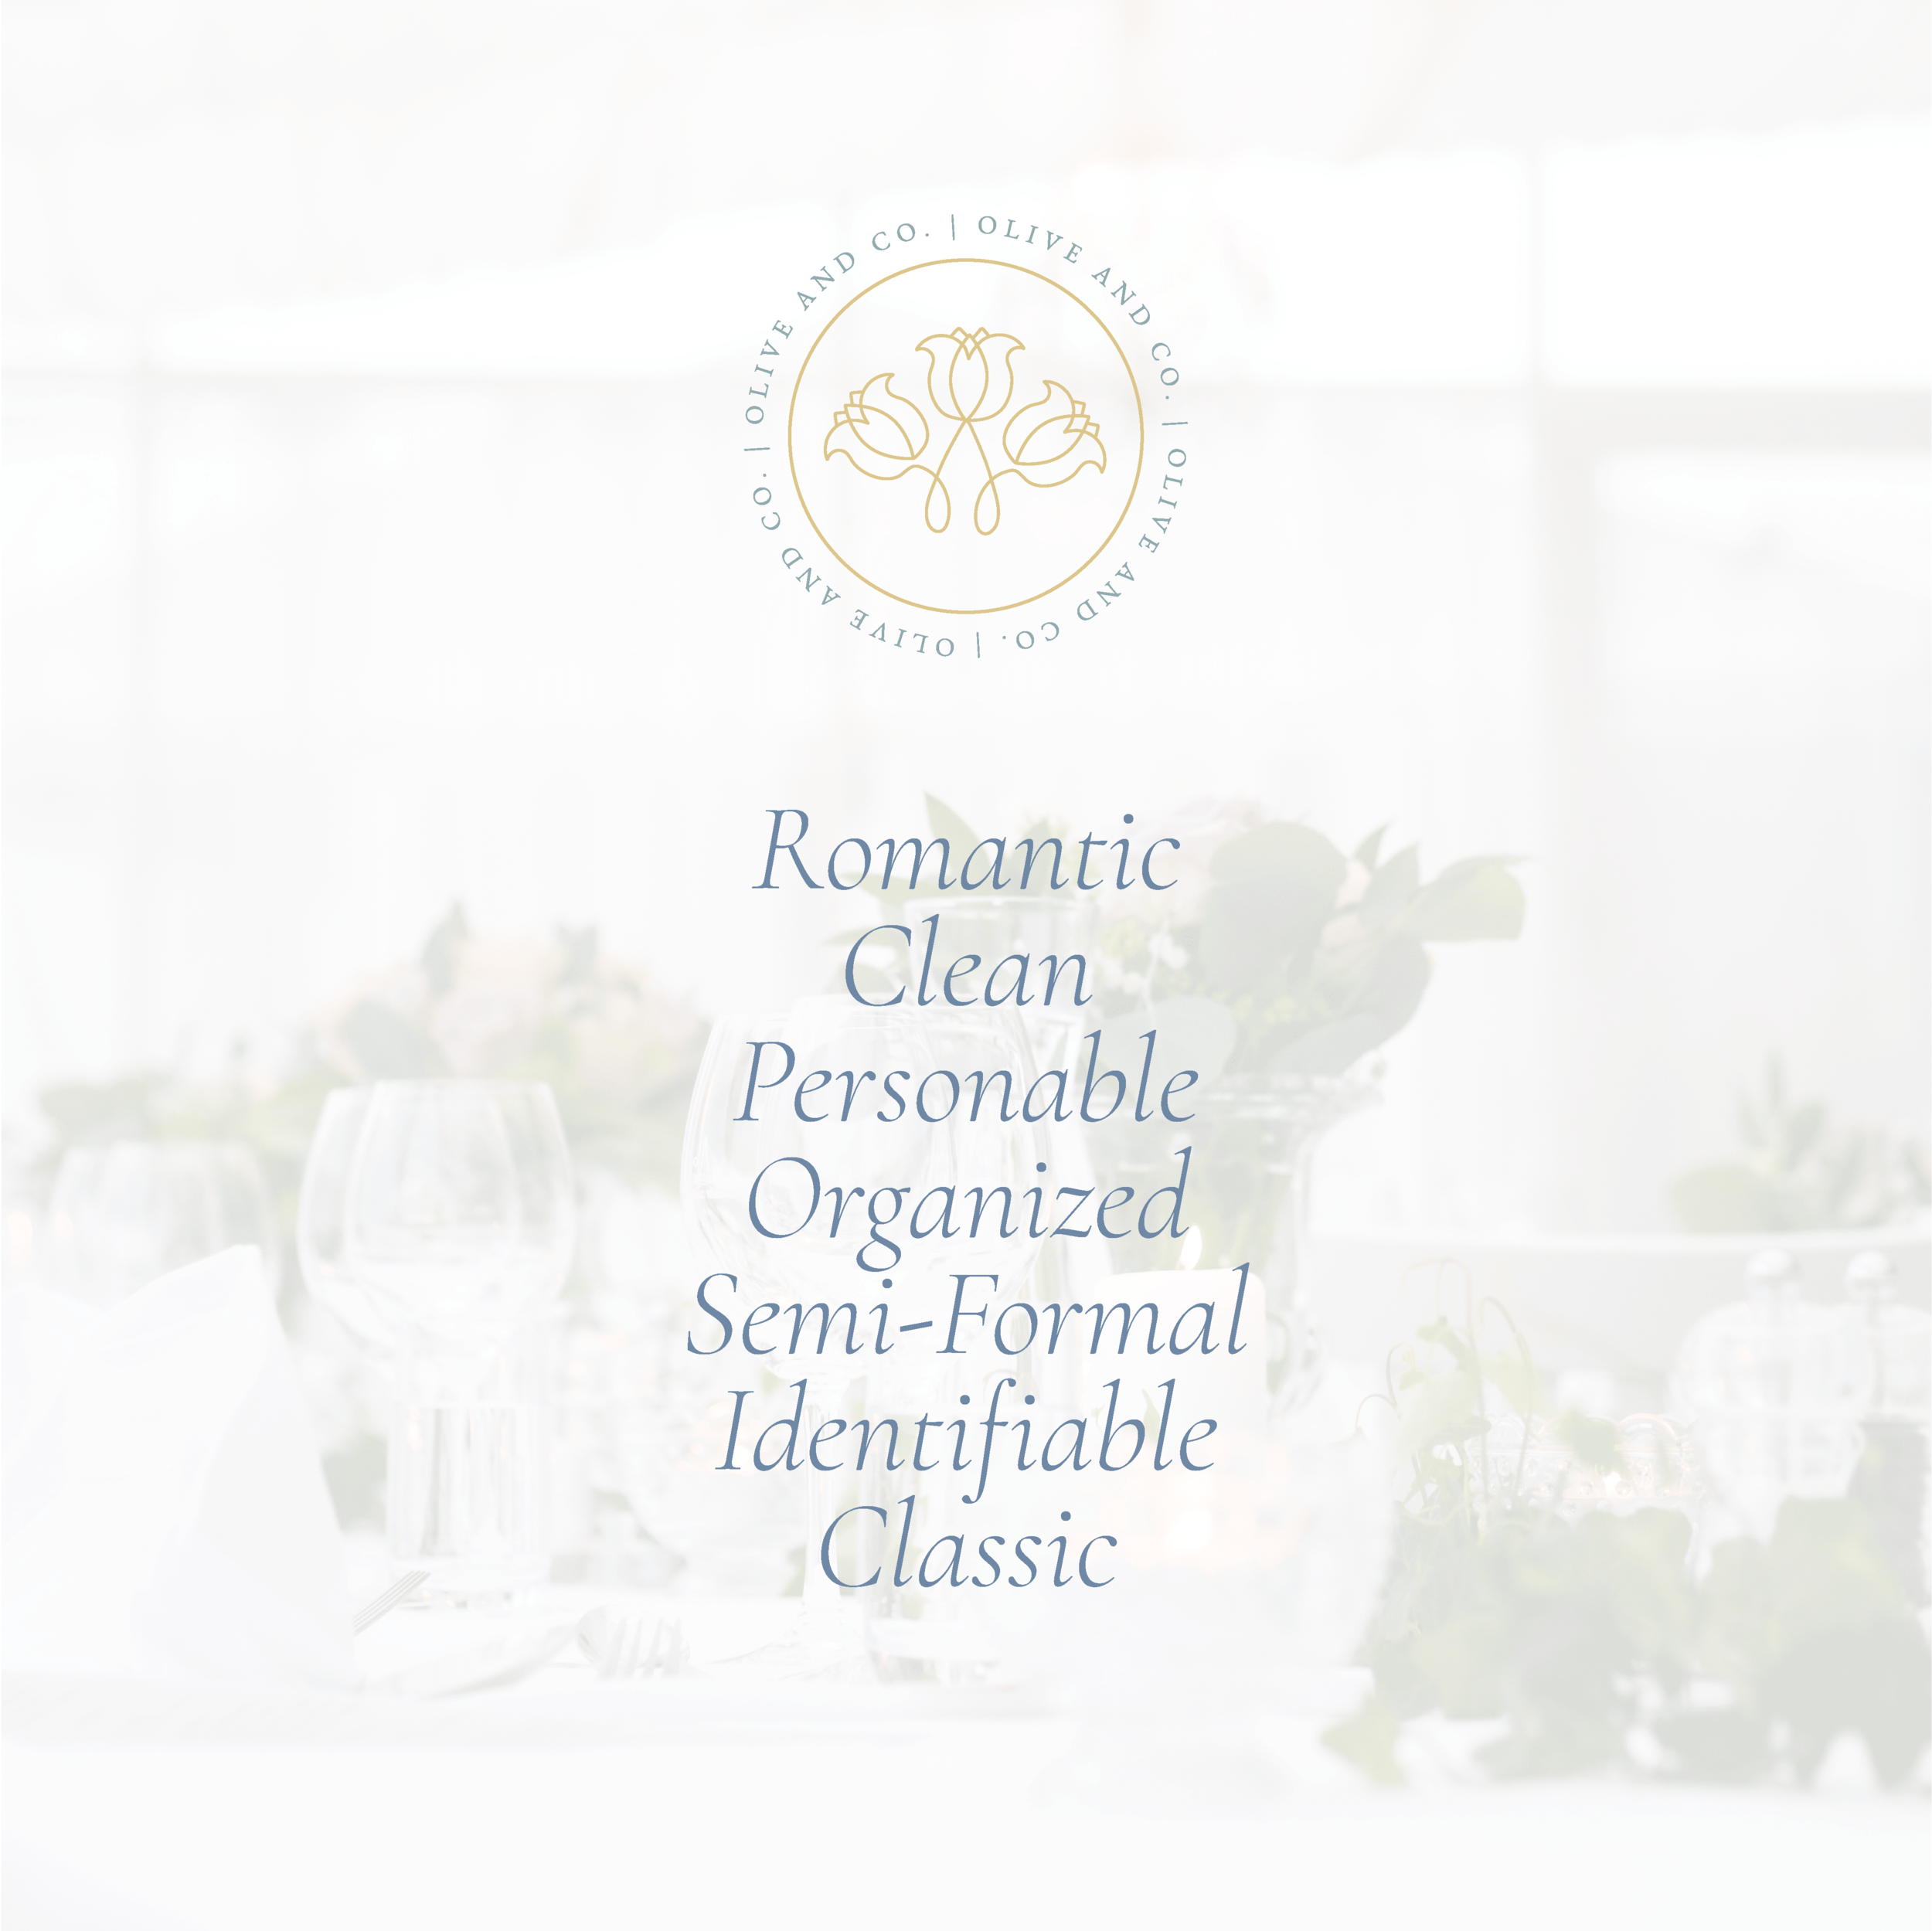 Olive and Co. Events Portland Maine Wedding Planner brand and logo design by kindly by kelsea